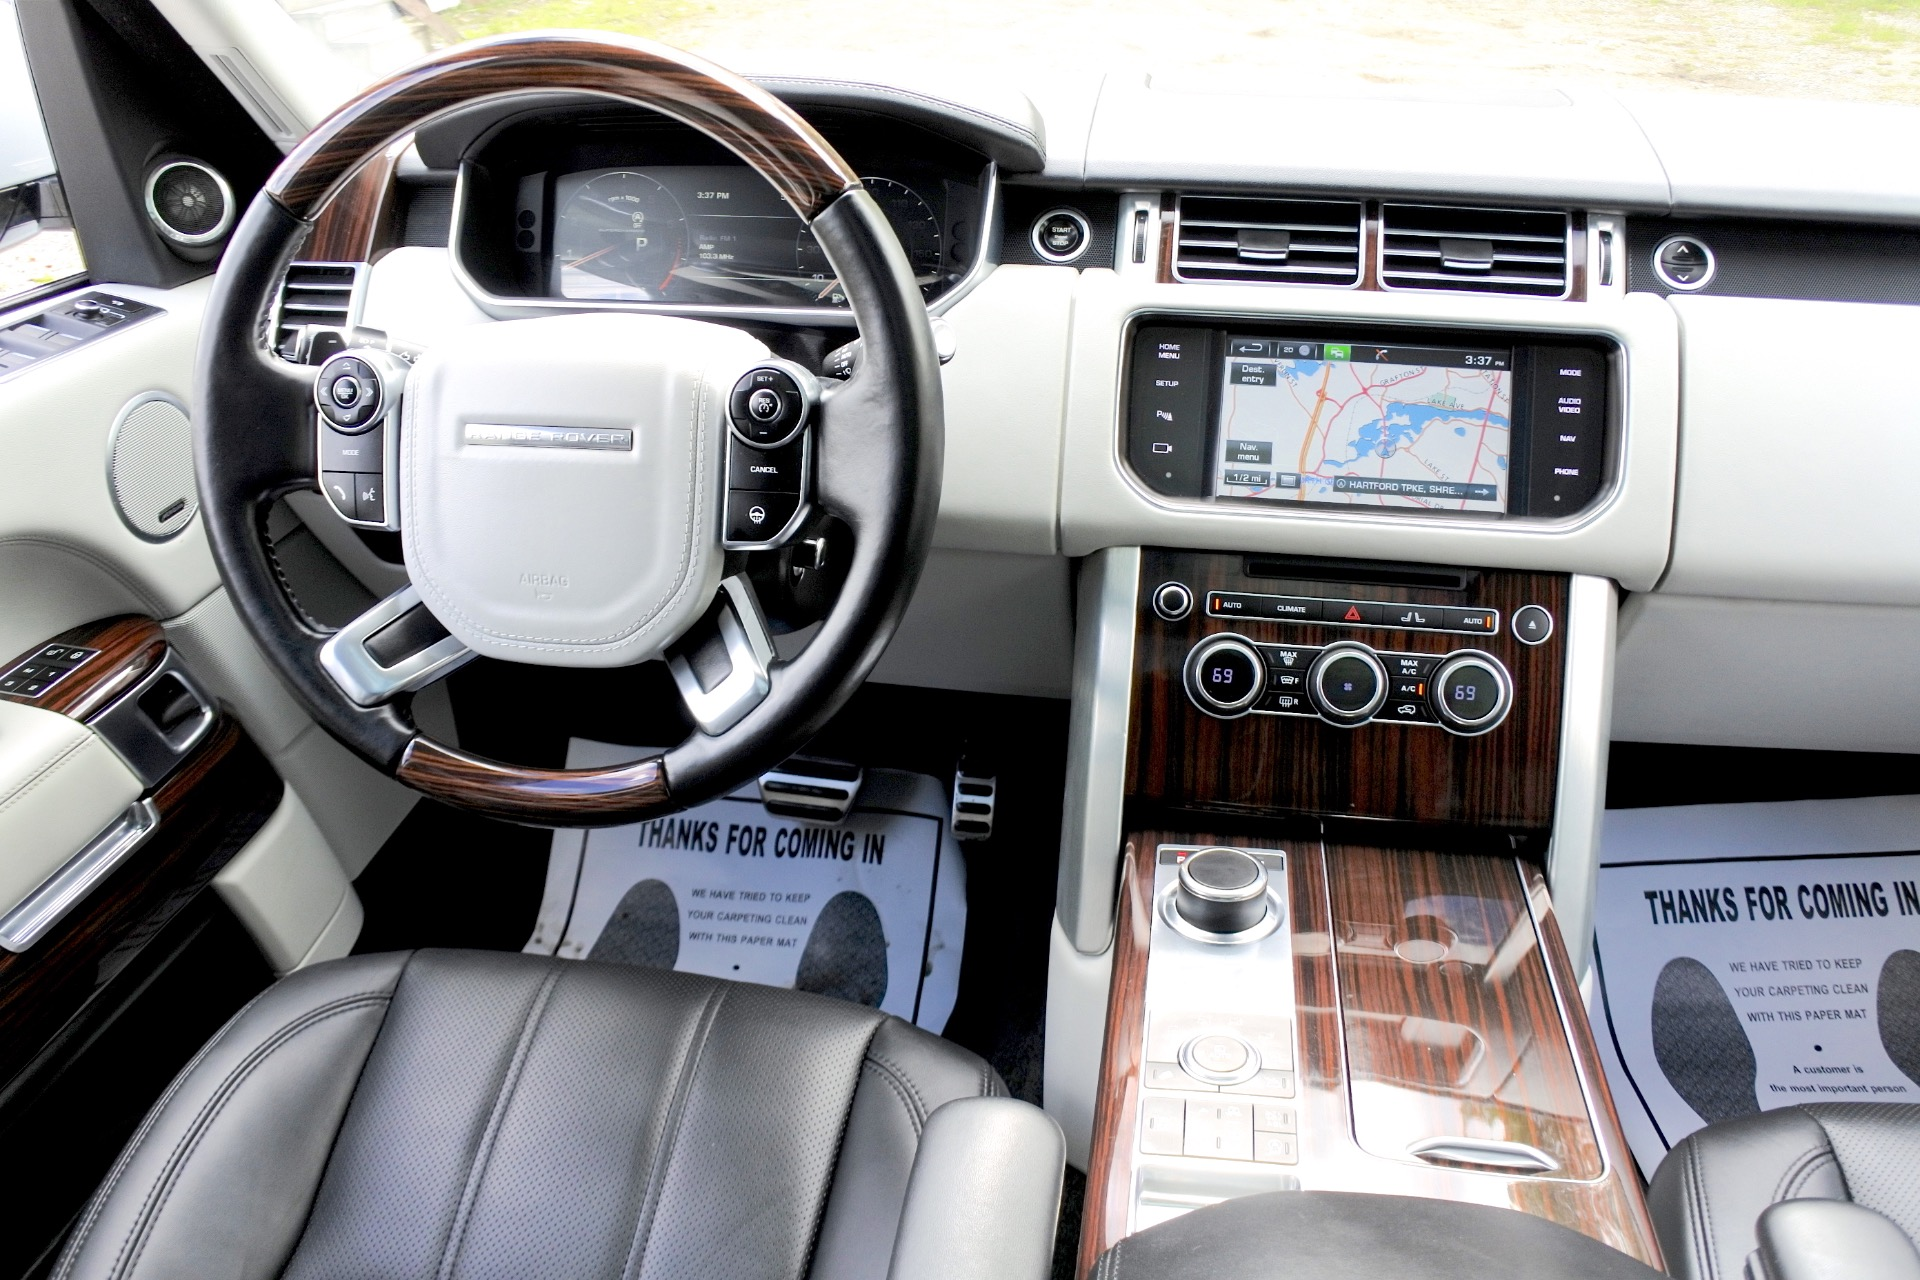 Used 2015 Land Rover Range Rover 4WD 4dr Supercharged Used 2015 Land Rover Range Rover 4WD 4dr Supercharged for sale  at Metro West Motorcars LLC in Shrewsbury MA 10